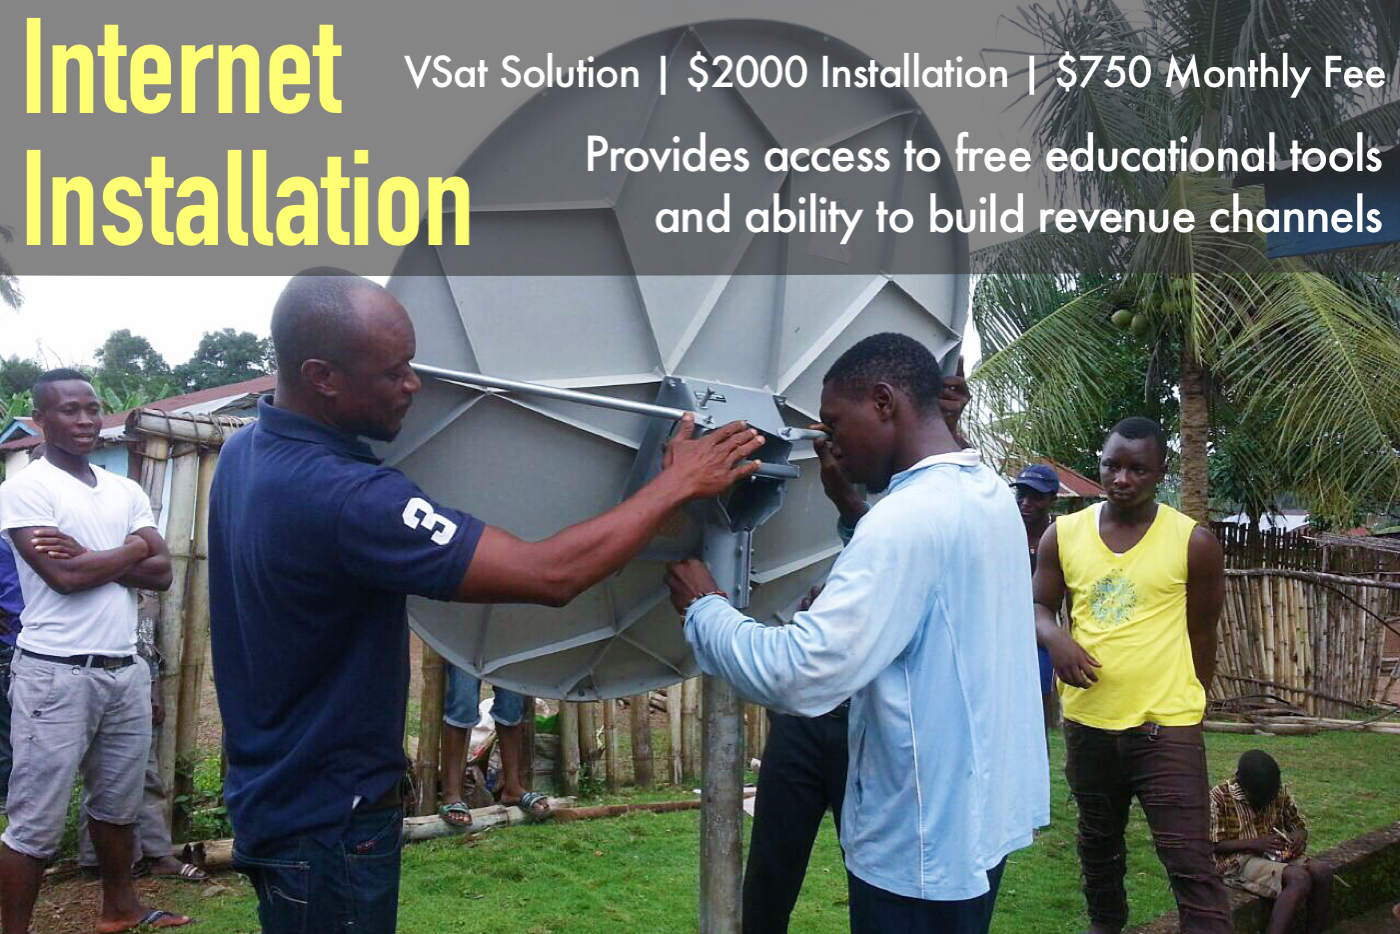 Rural Internet Installation